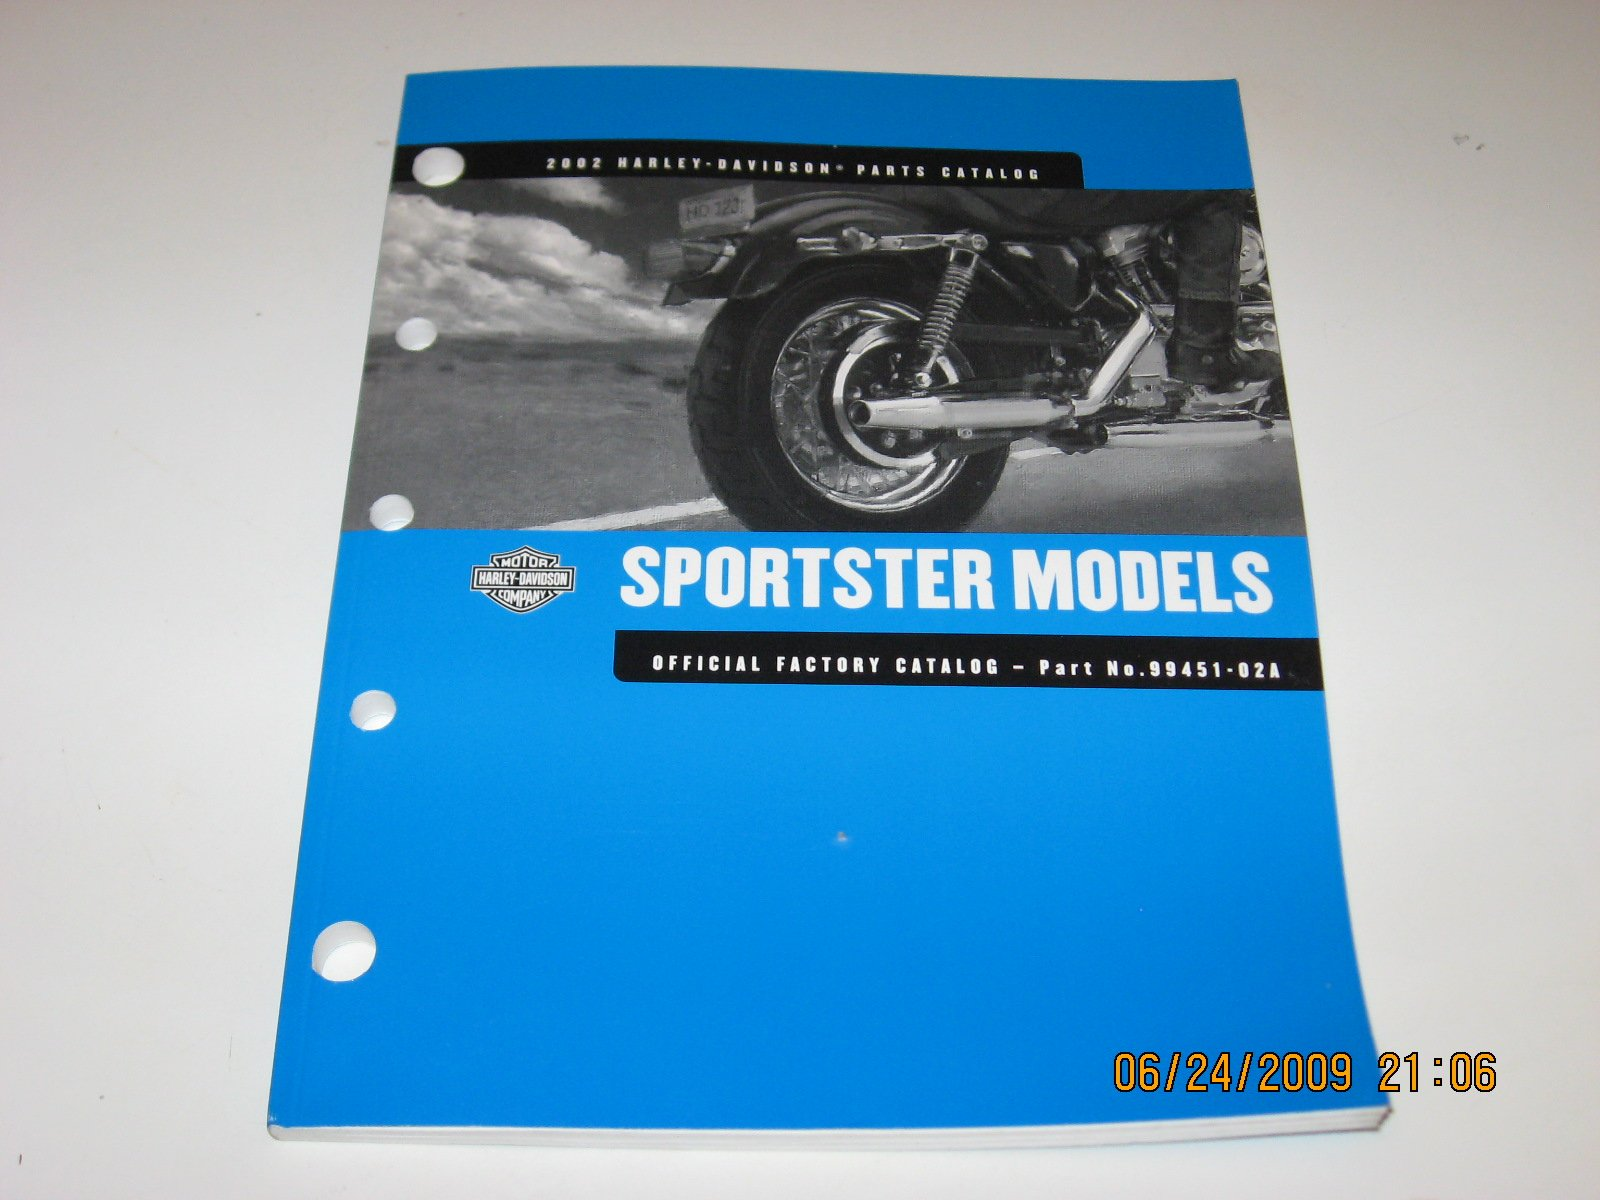 2002 harley davidson service manual sportster models part no 99484 rh amazon com sportster service manual 2006 sportster service manual 2016